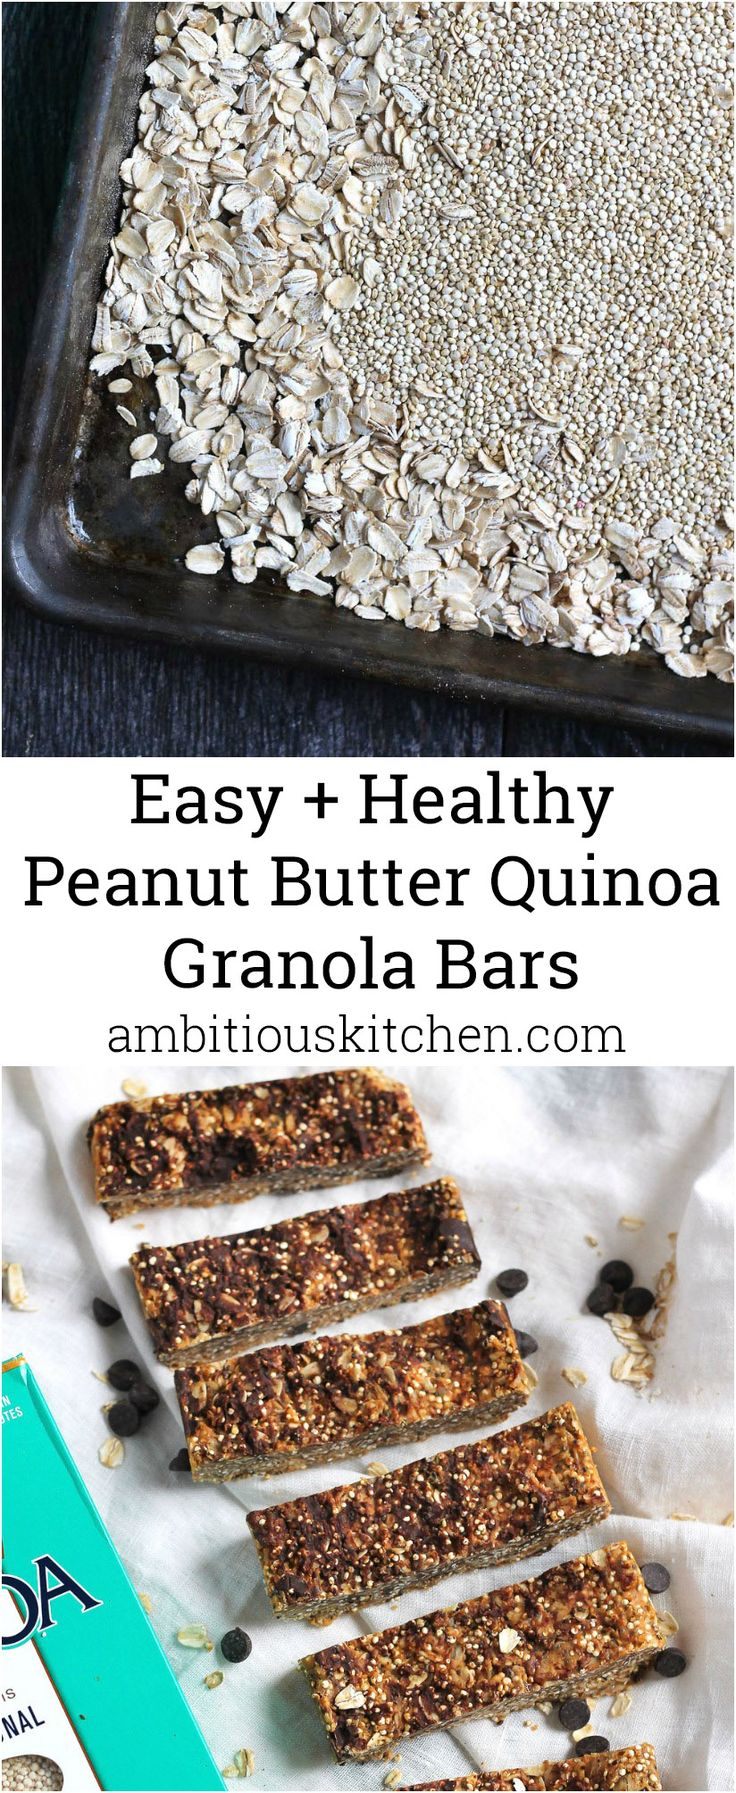 Almost no-bake quinoa granola bars with simple, natural ingredients. Only require a few ingredients and so easy to make!